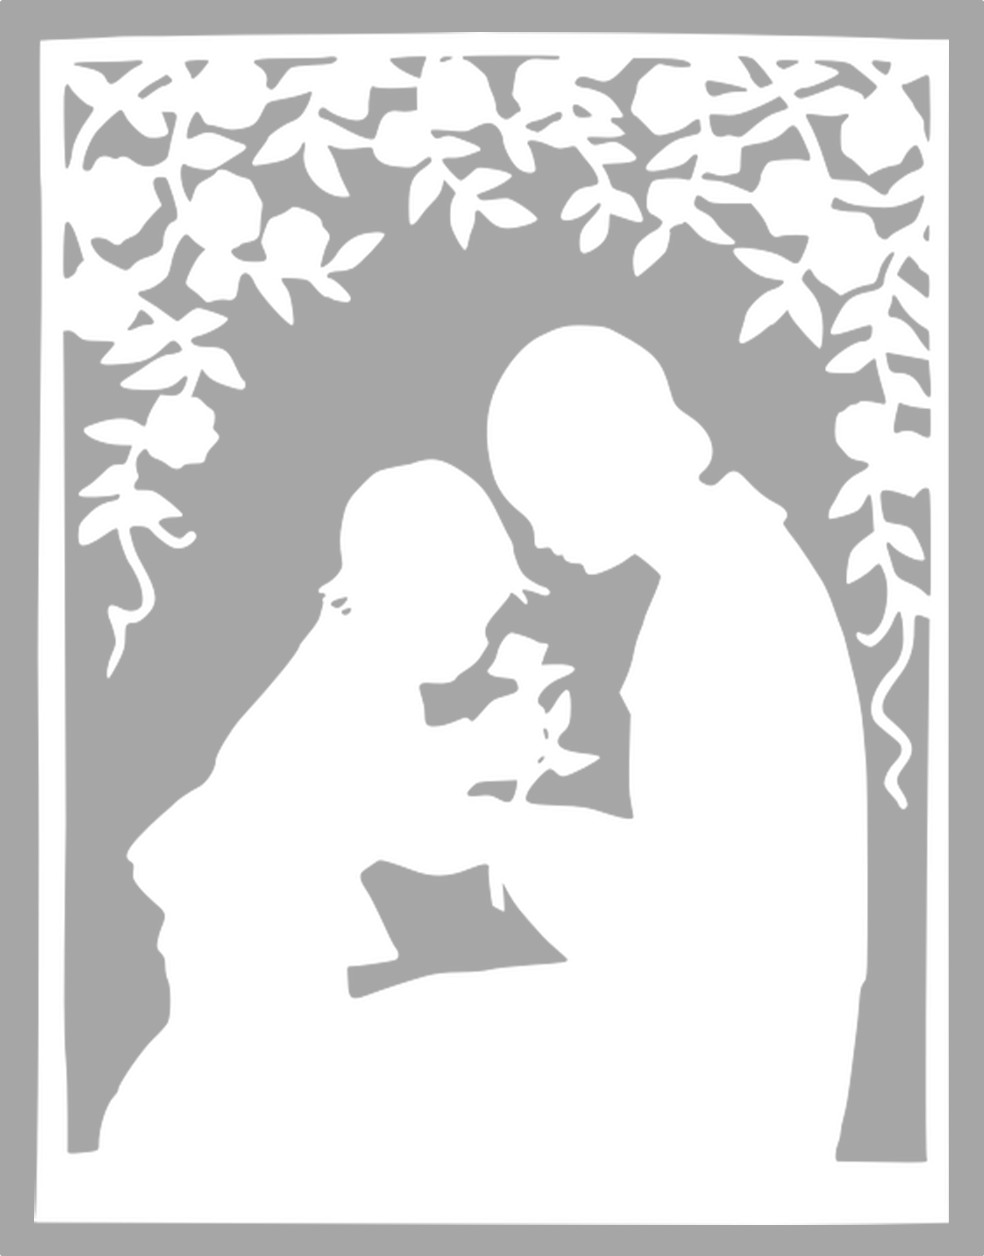 Free Papercutting Templates   Template, Paper cutting and Papercutting